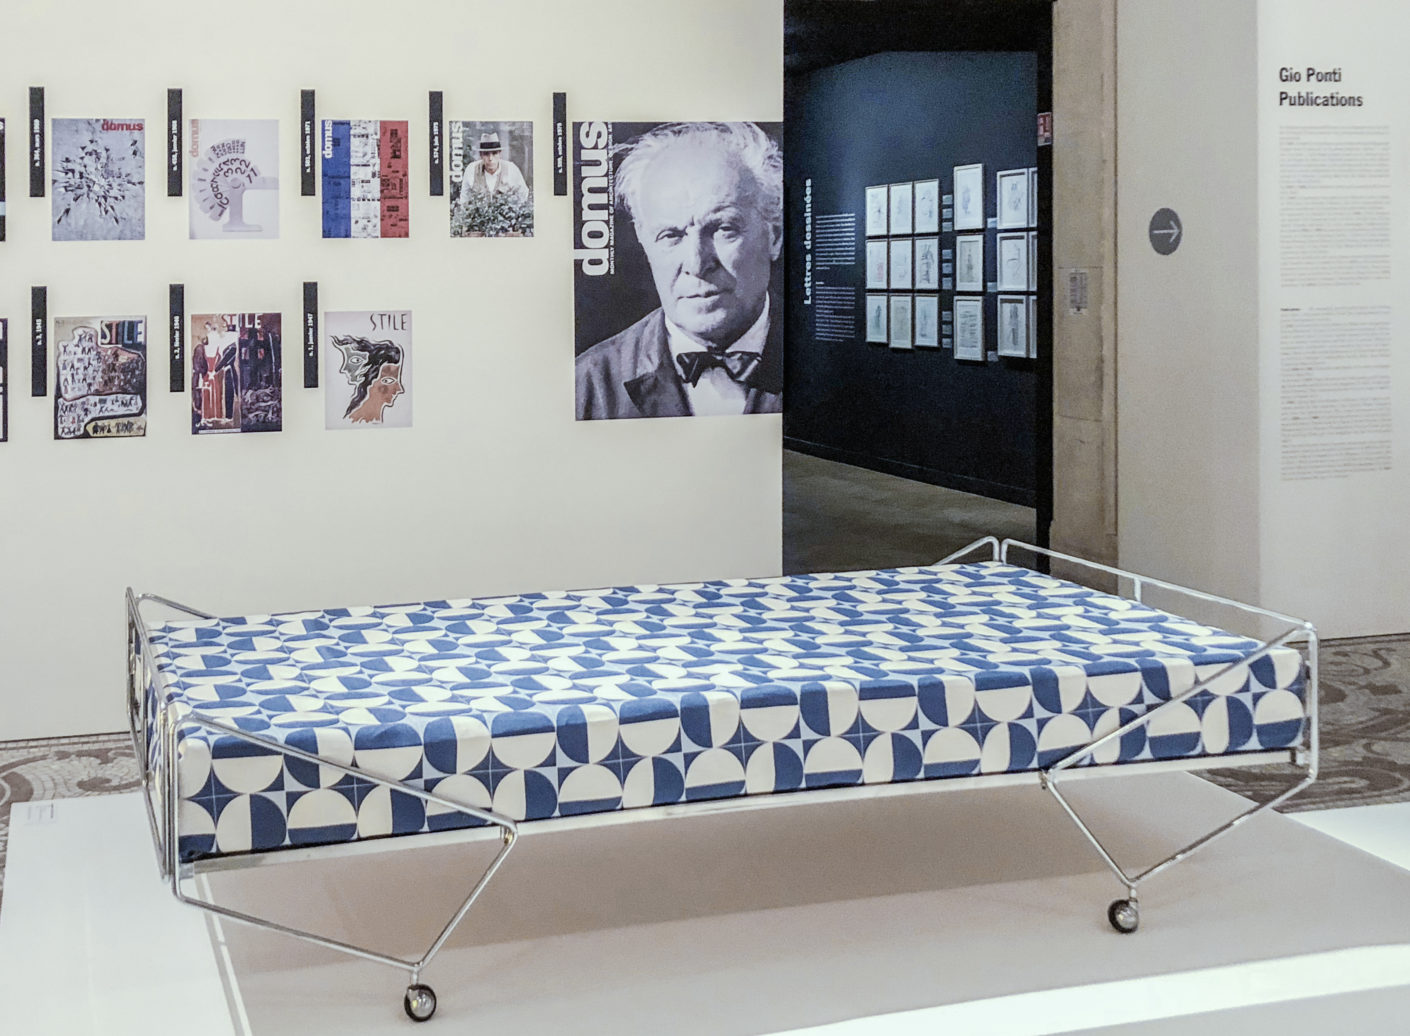 Bed from the Apta collection by Gio Ponti from 1970.